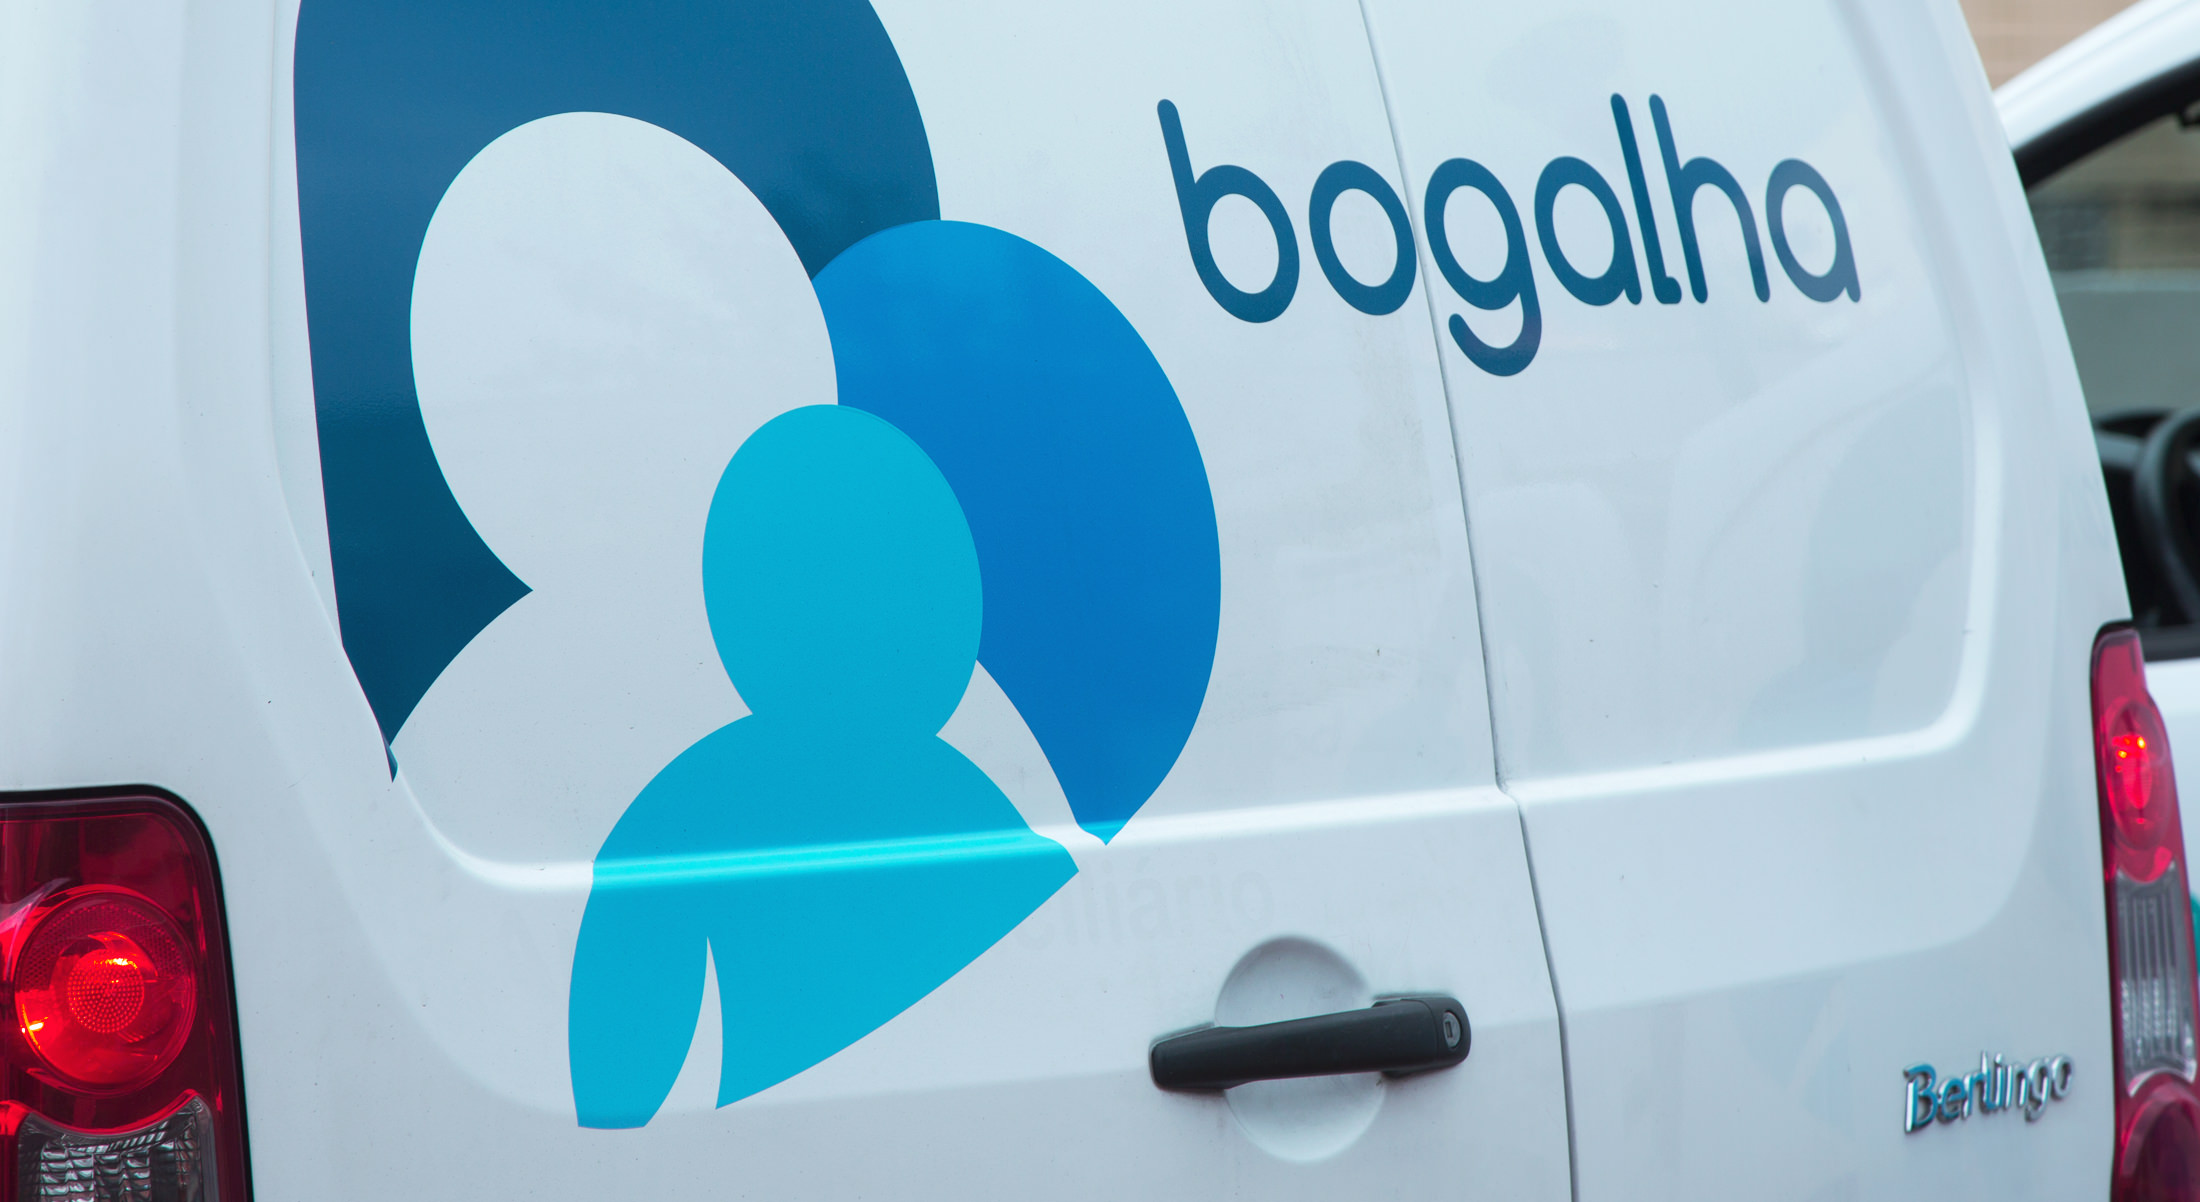 Bogalha Stickers for Trucks